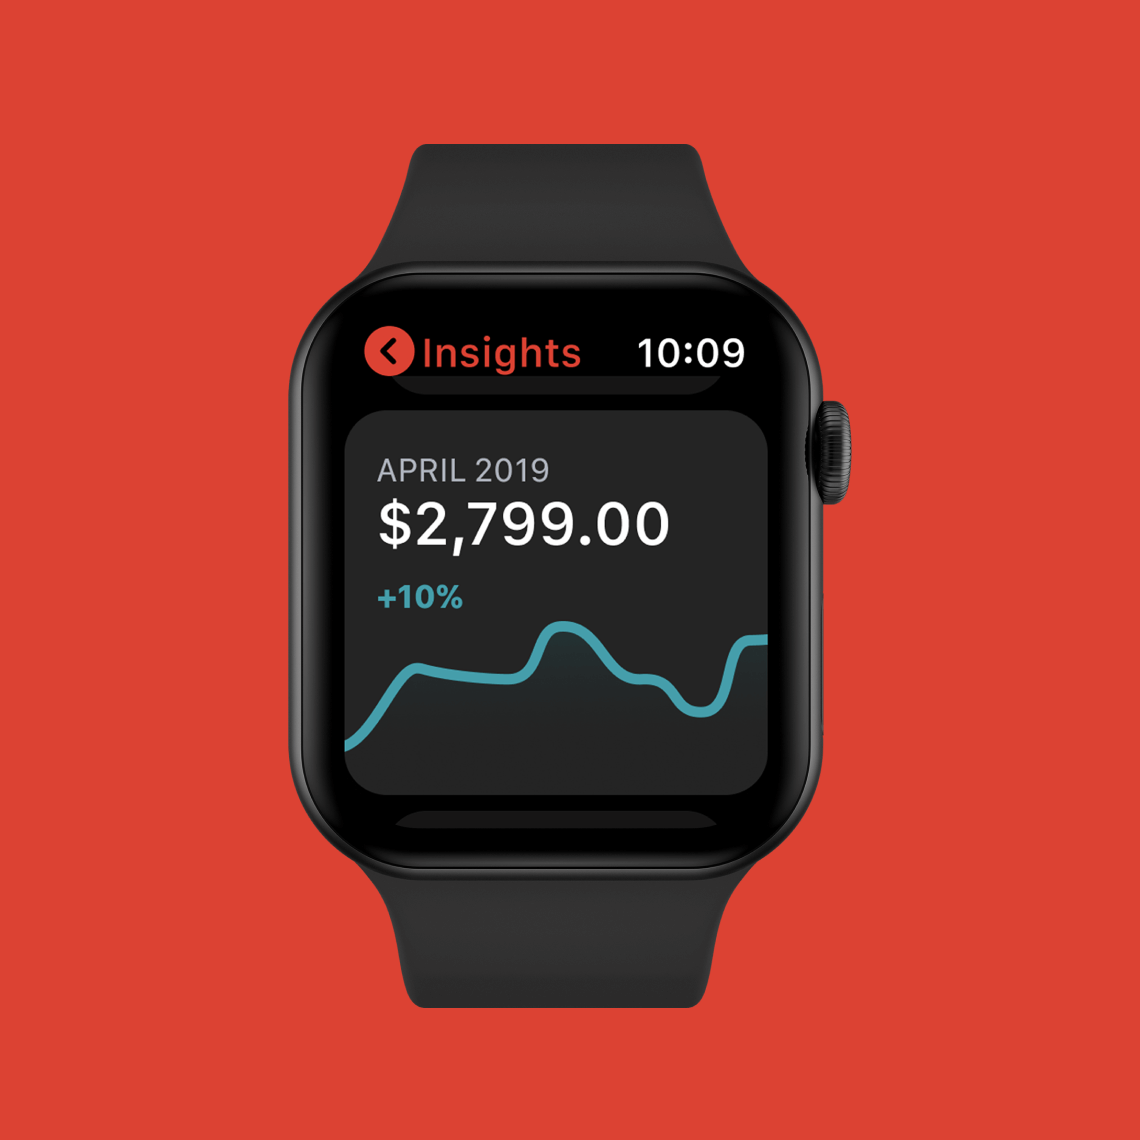 PC Financial Apple Watch app